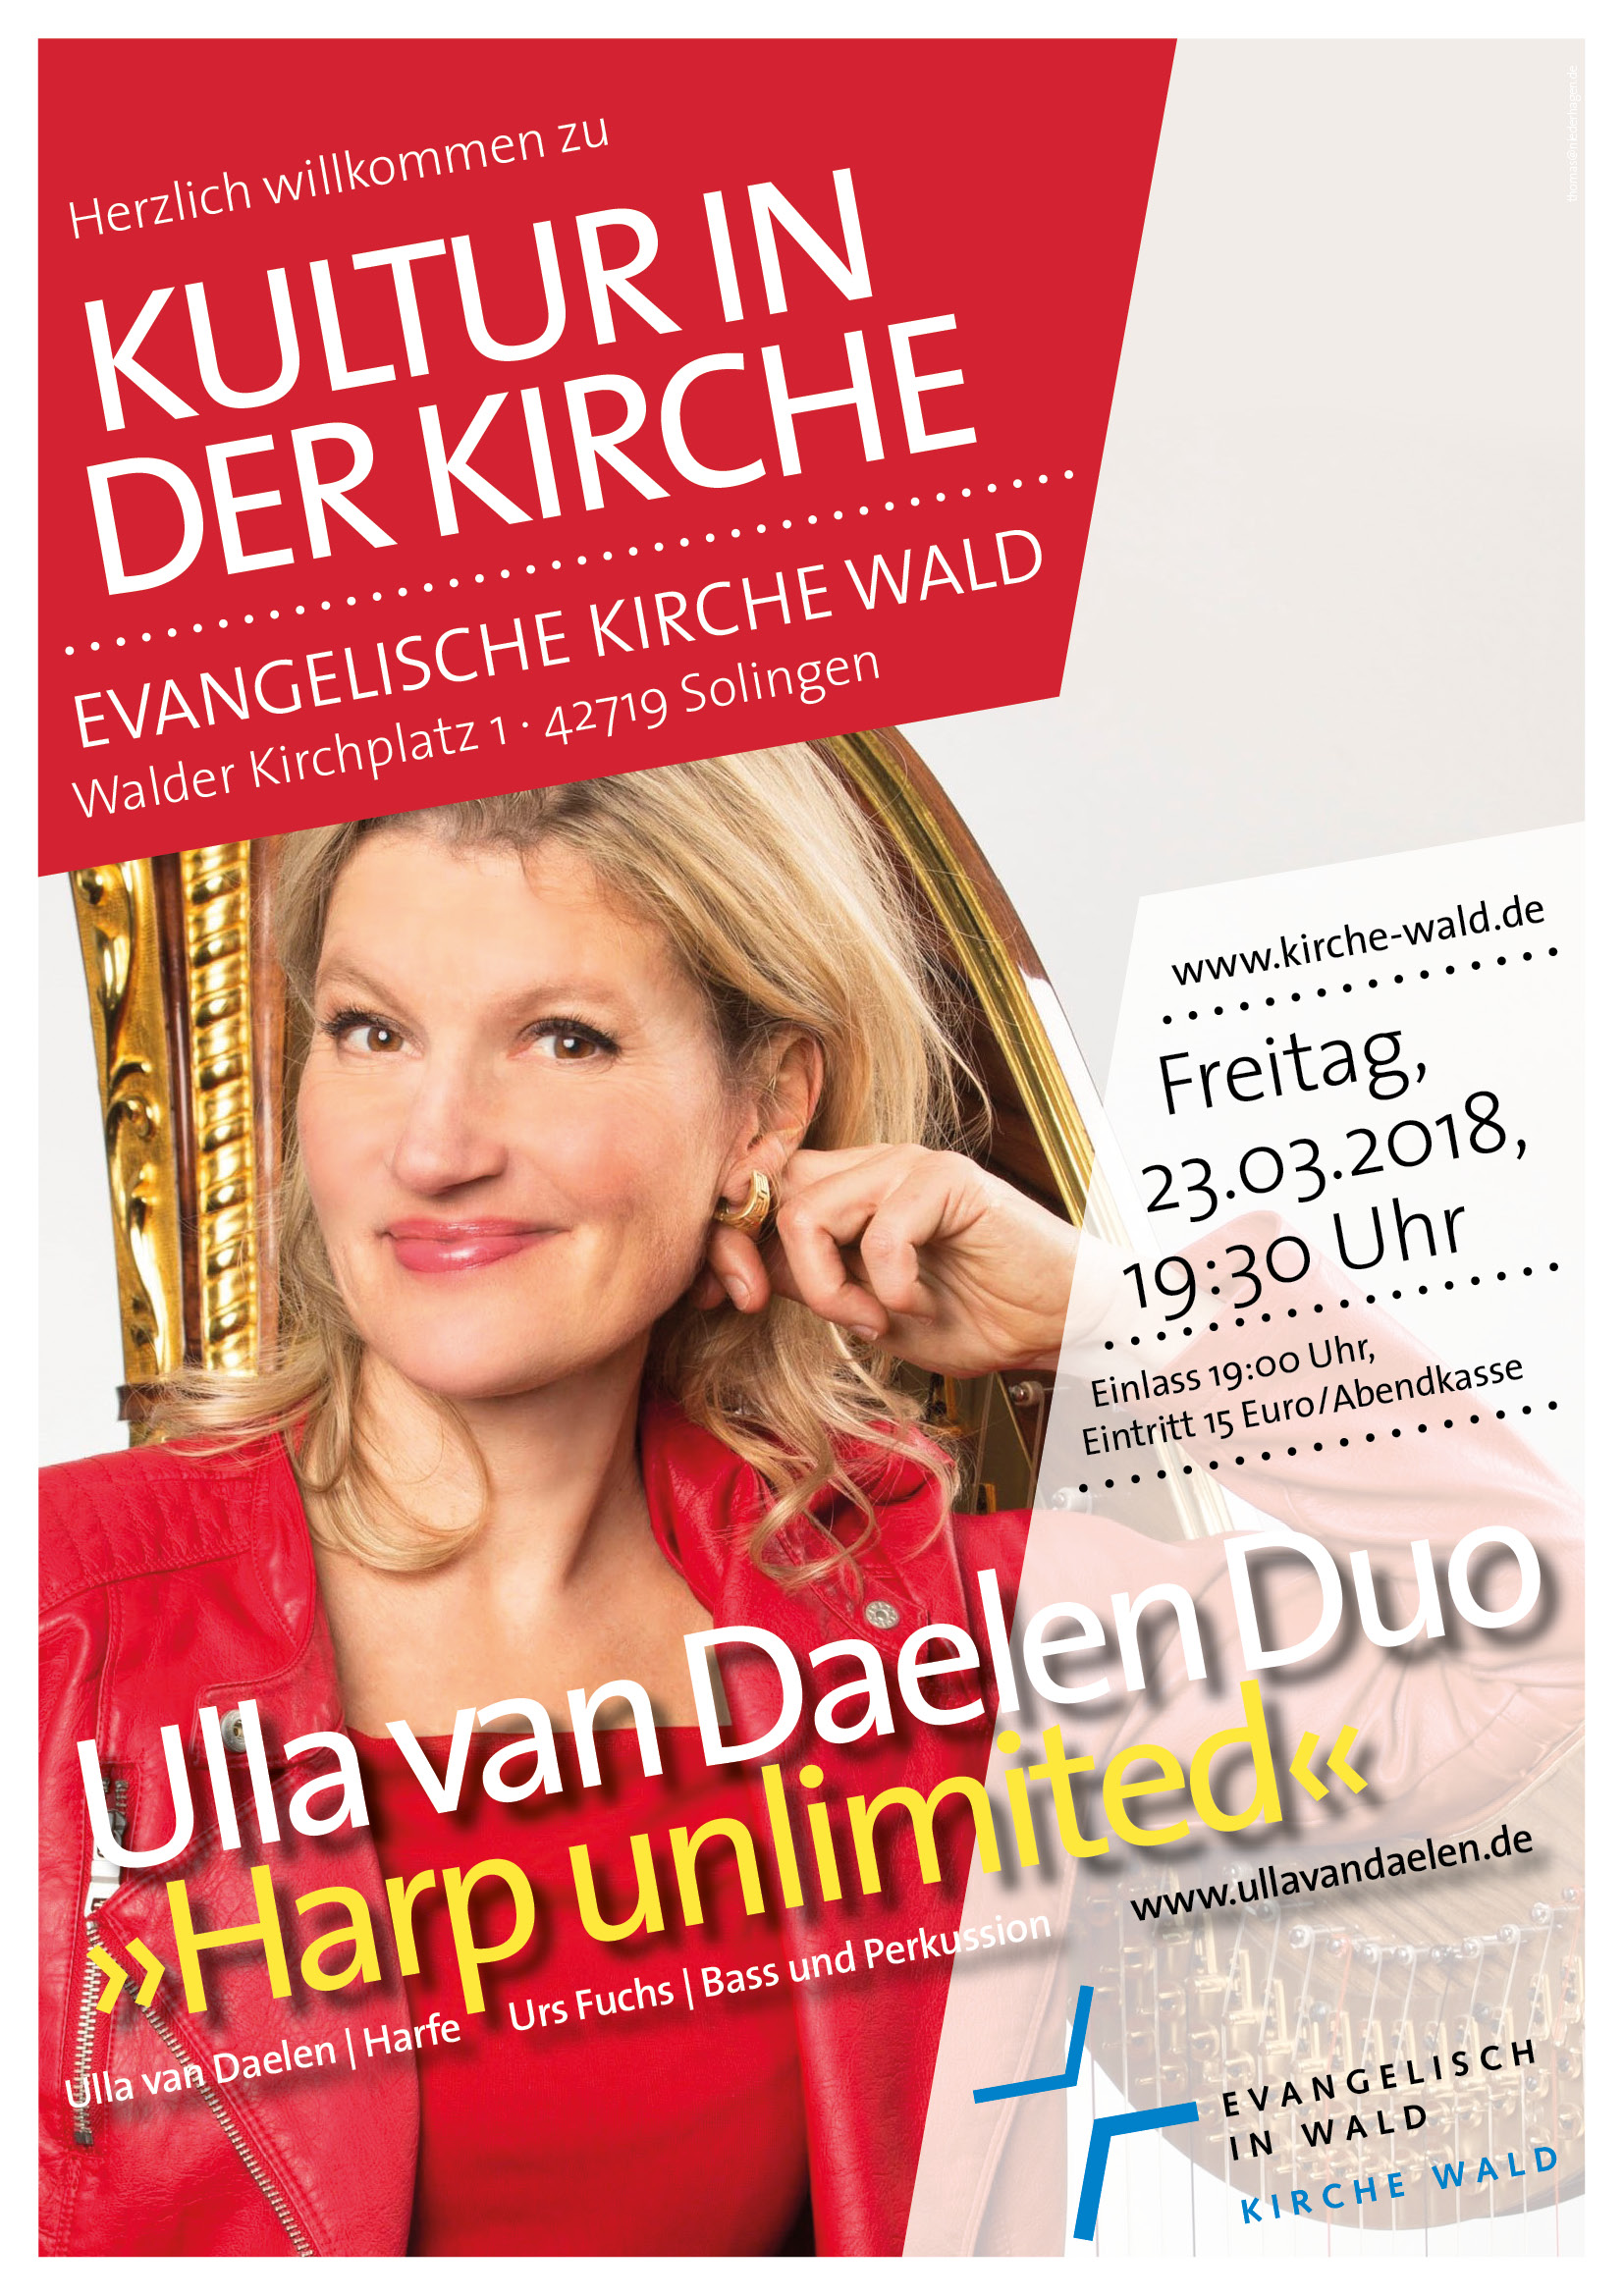 Ulla van Daelen Duo - Harp unlimited